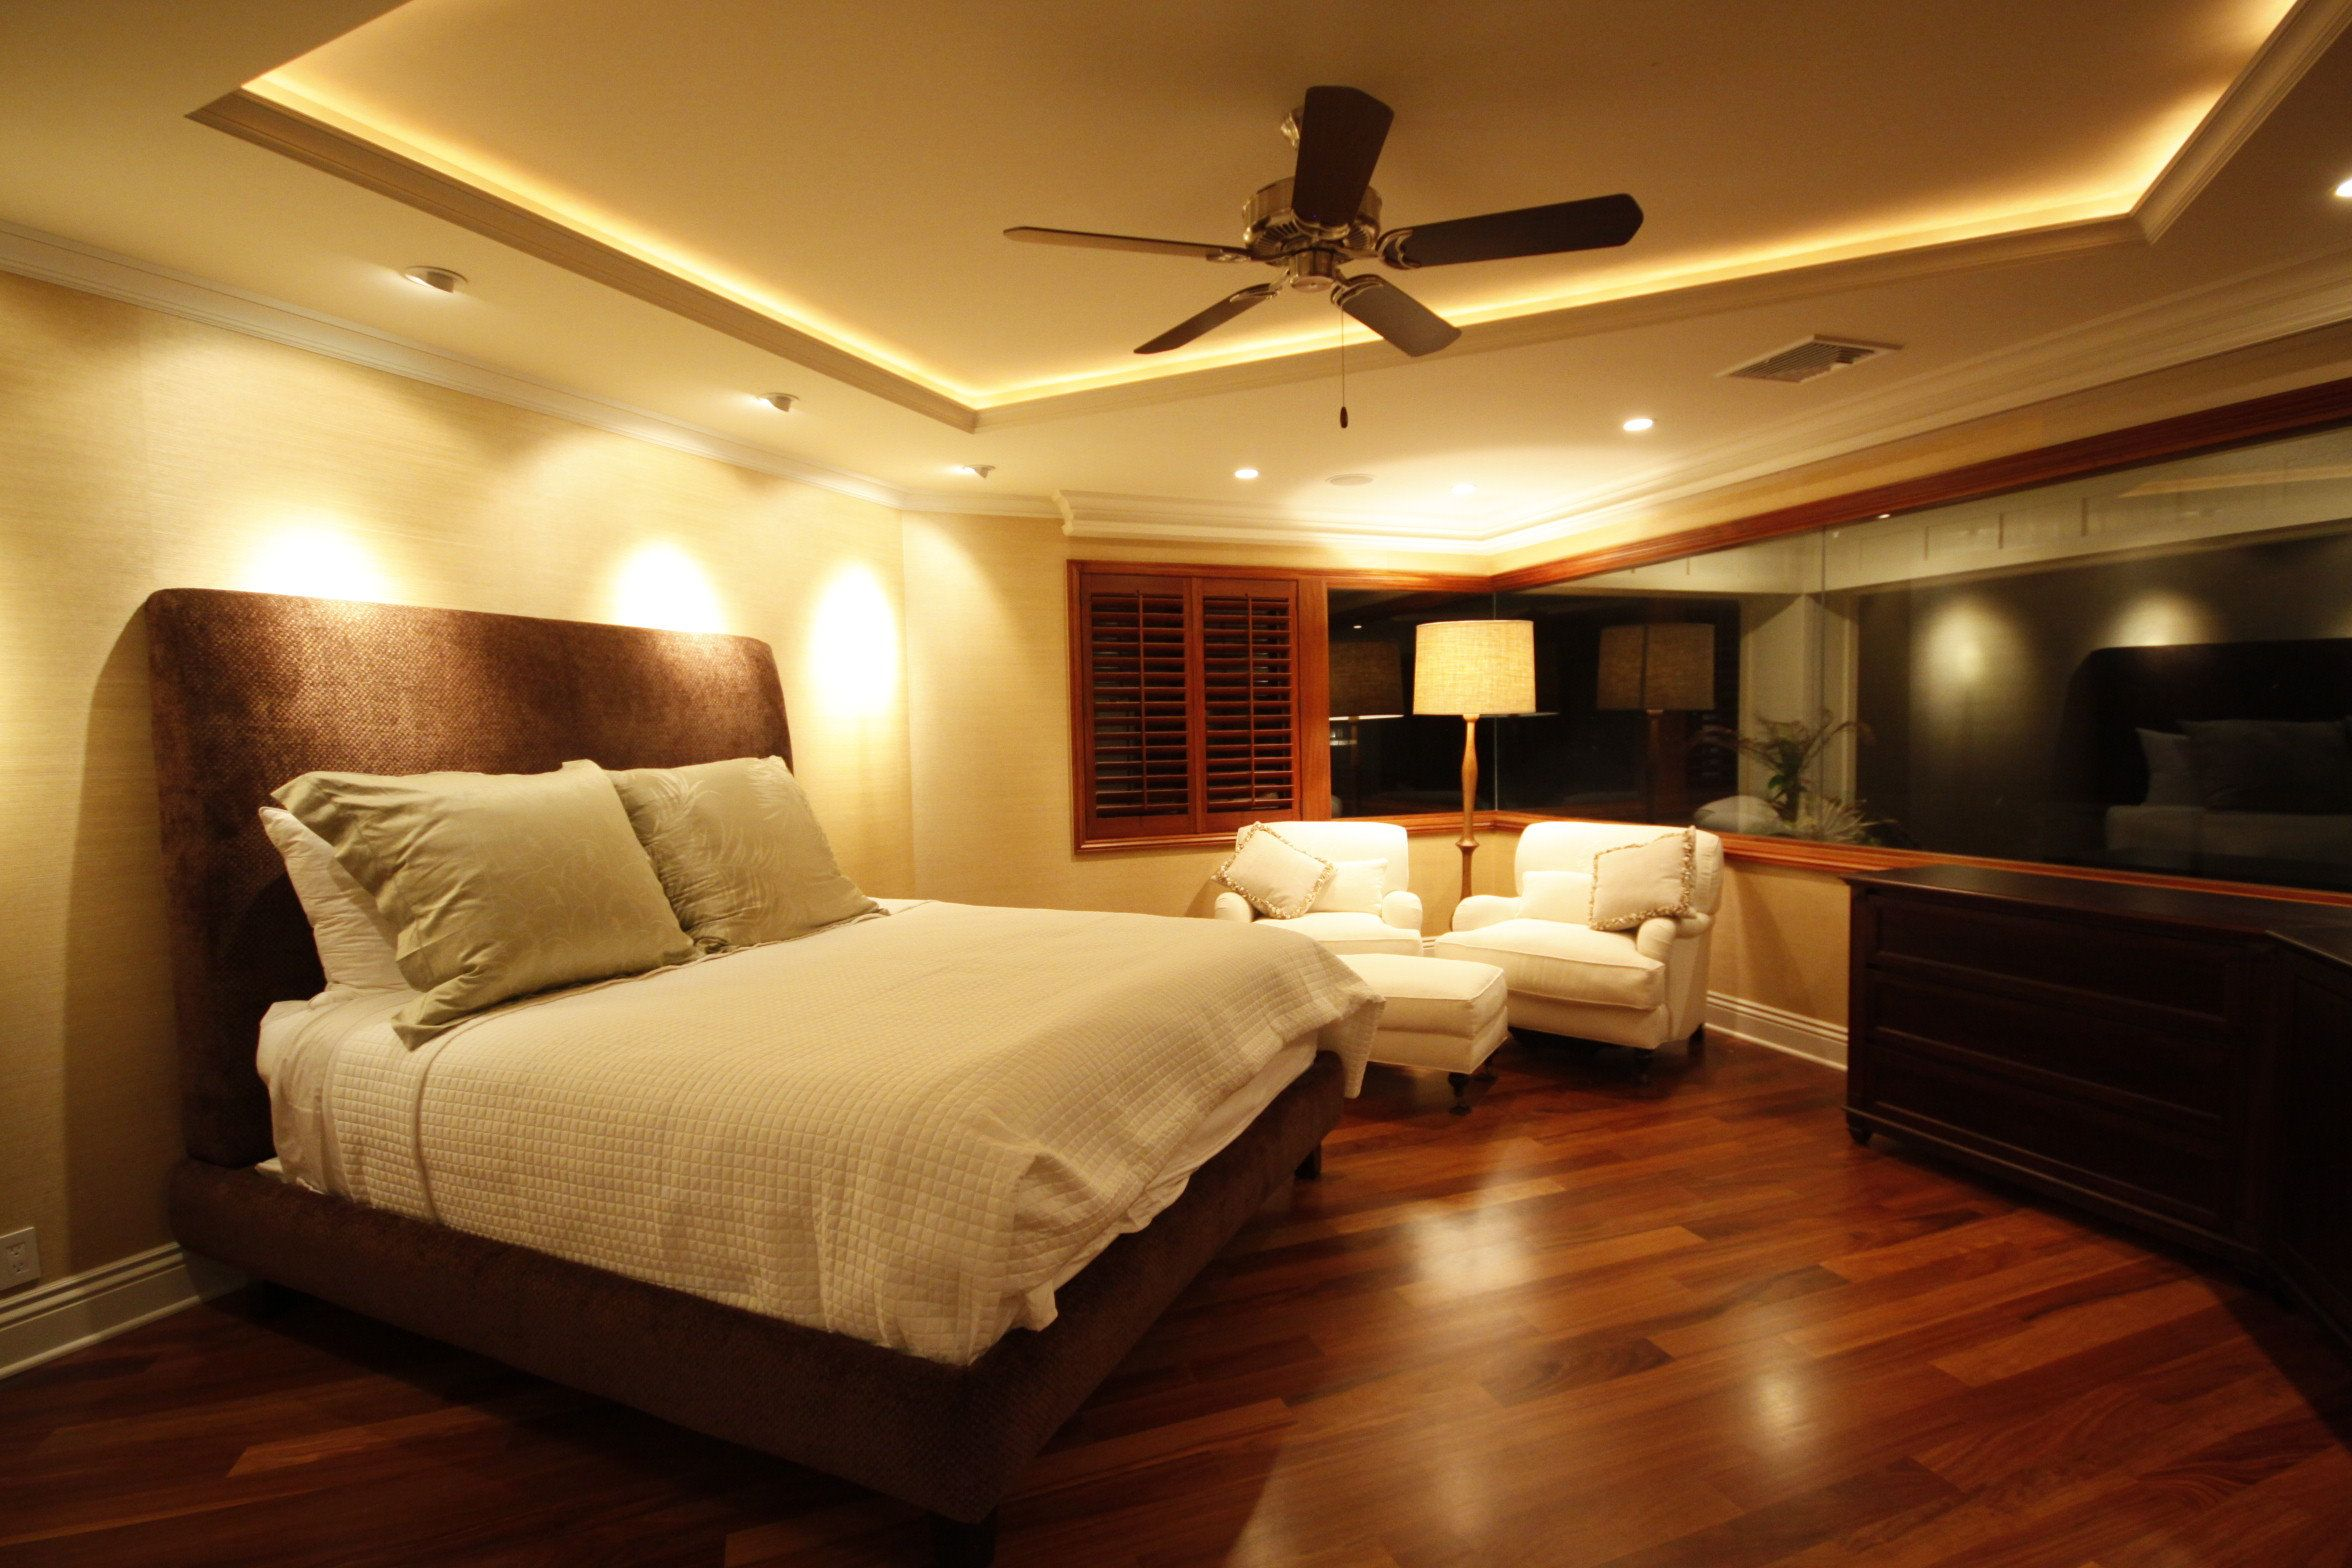 Appealing master bedroom modern decor with wooden floors for New master bedroom ideas